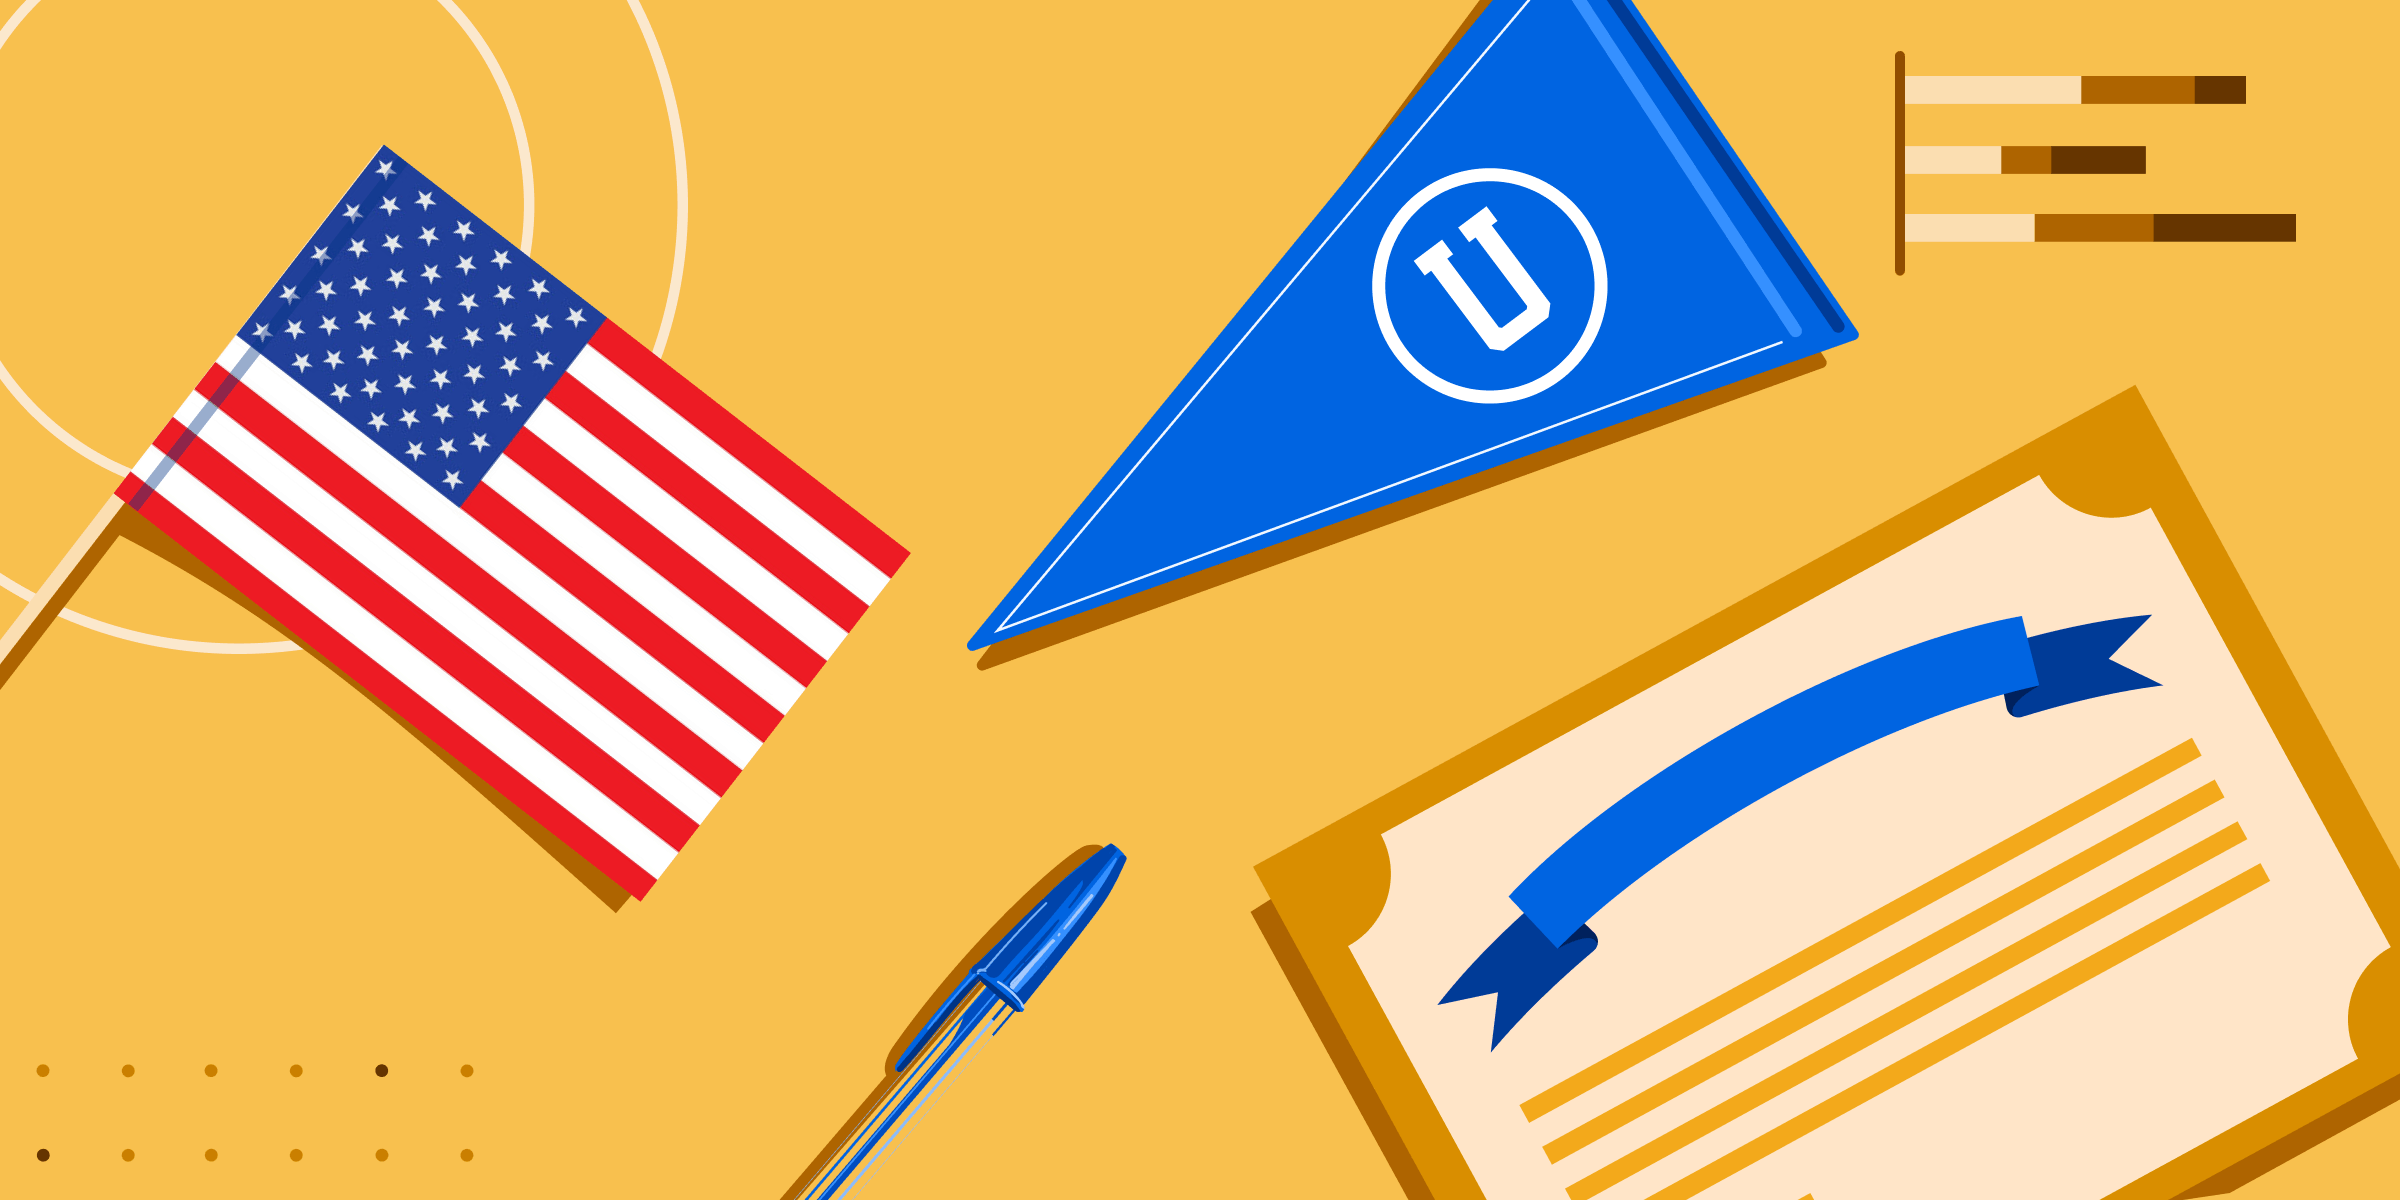 A pennant, a degree, a US flag, and a ballpoint pen.